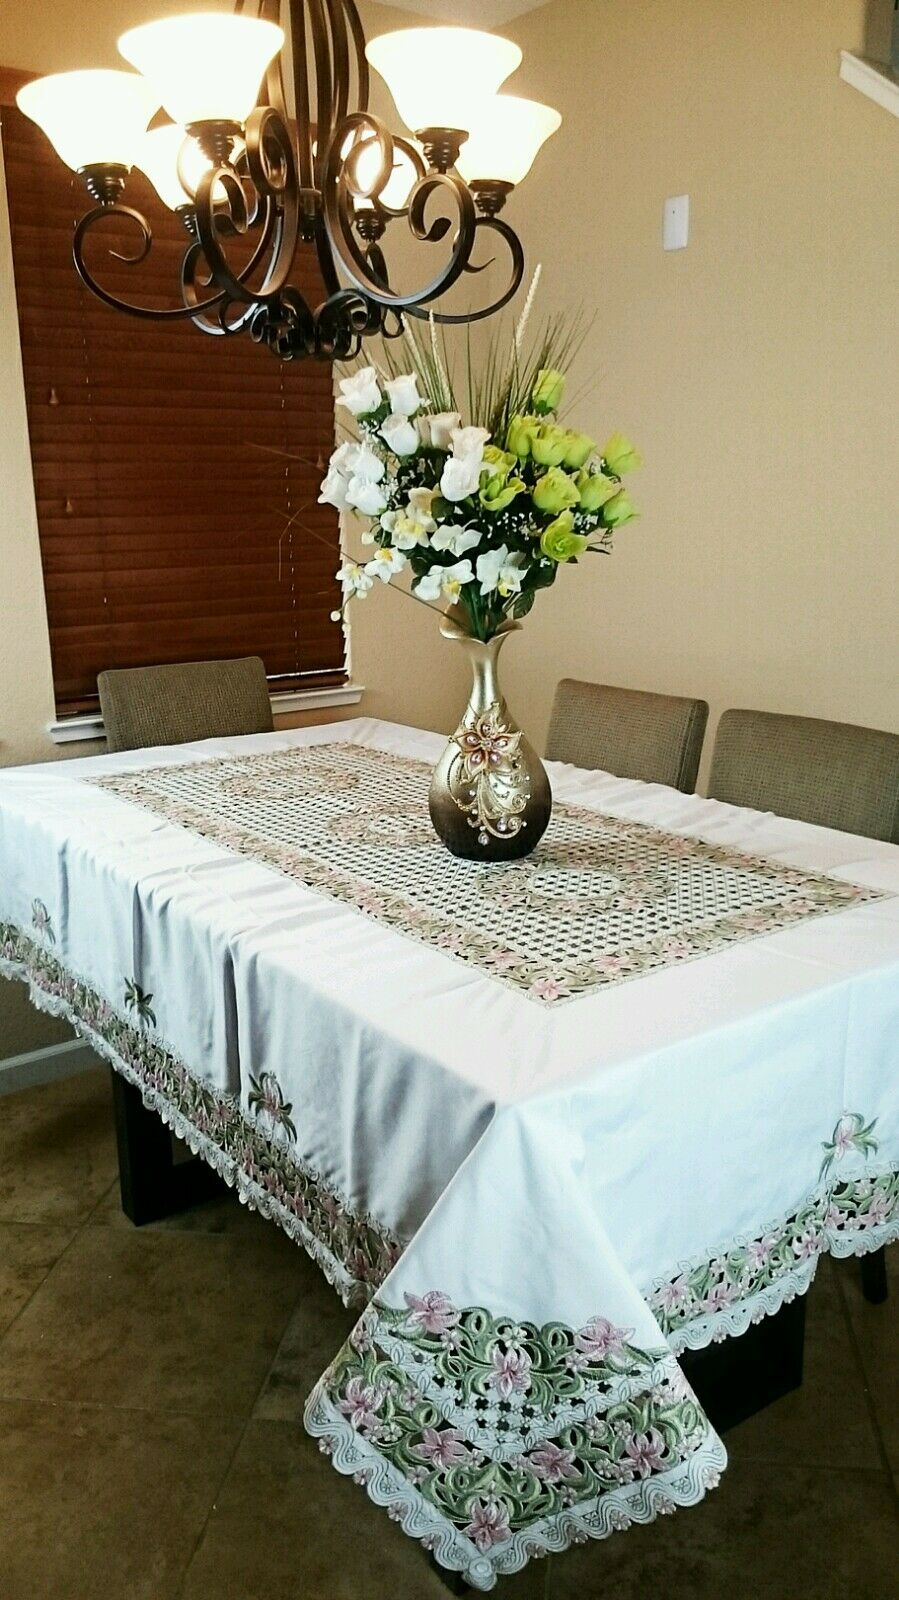 72x108  Embroiderouge Spring Floral Cutwork Embroidery Fabric Tablecloth 12 Napkin